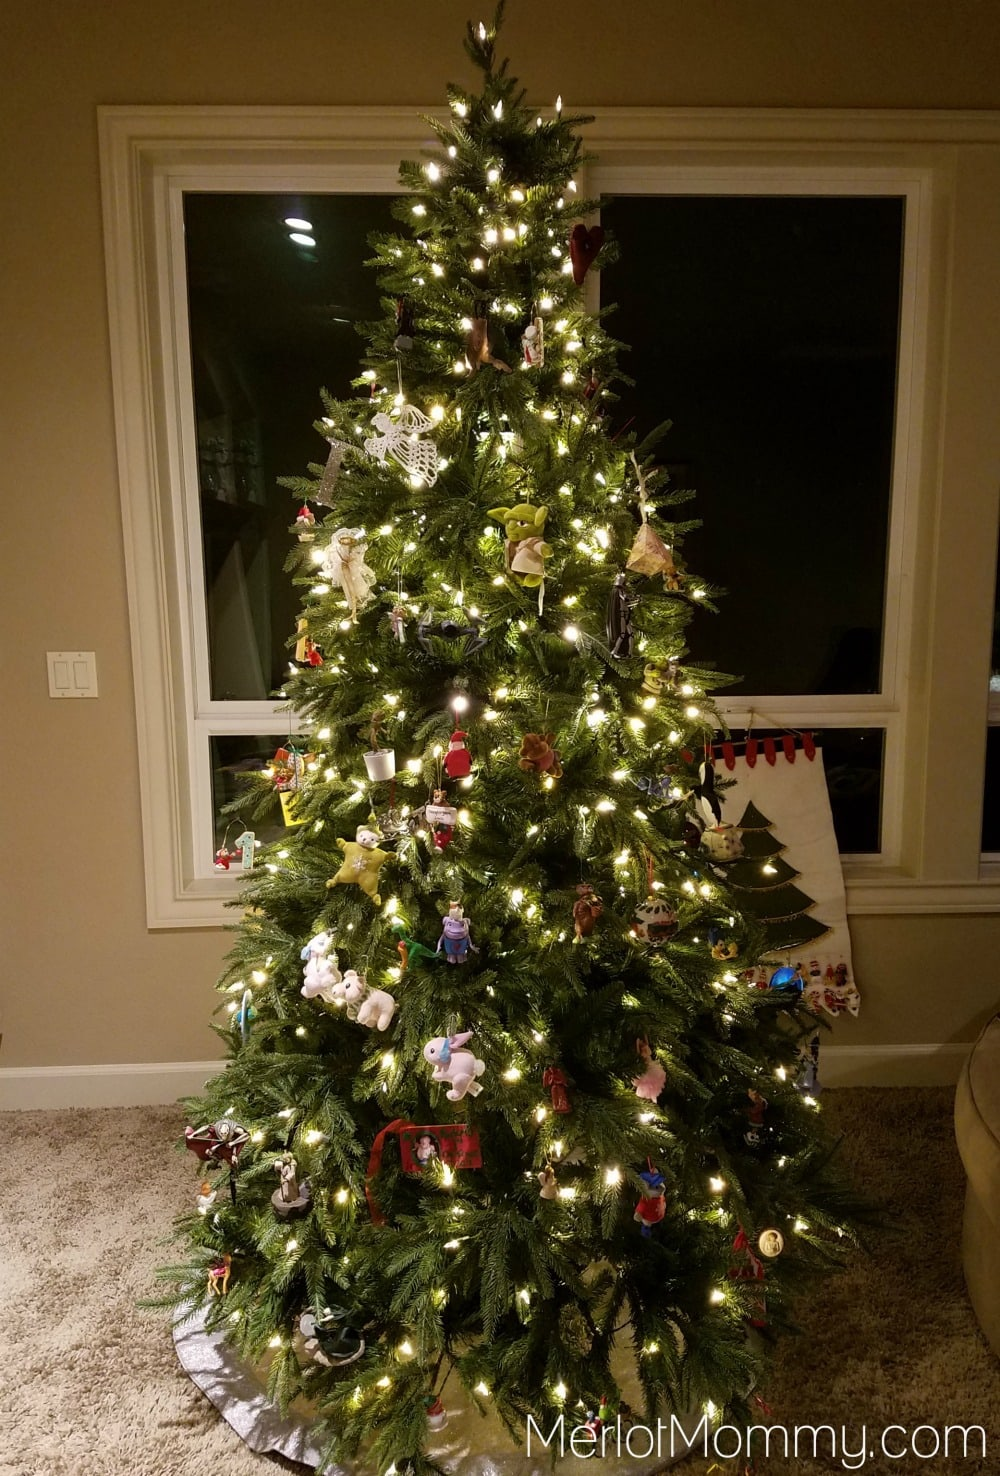 Make Decorating Your Tree for the Holidays Easy with ULTIMA Tree